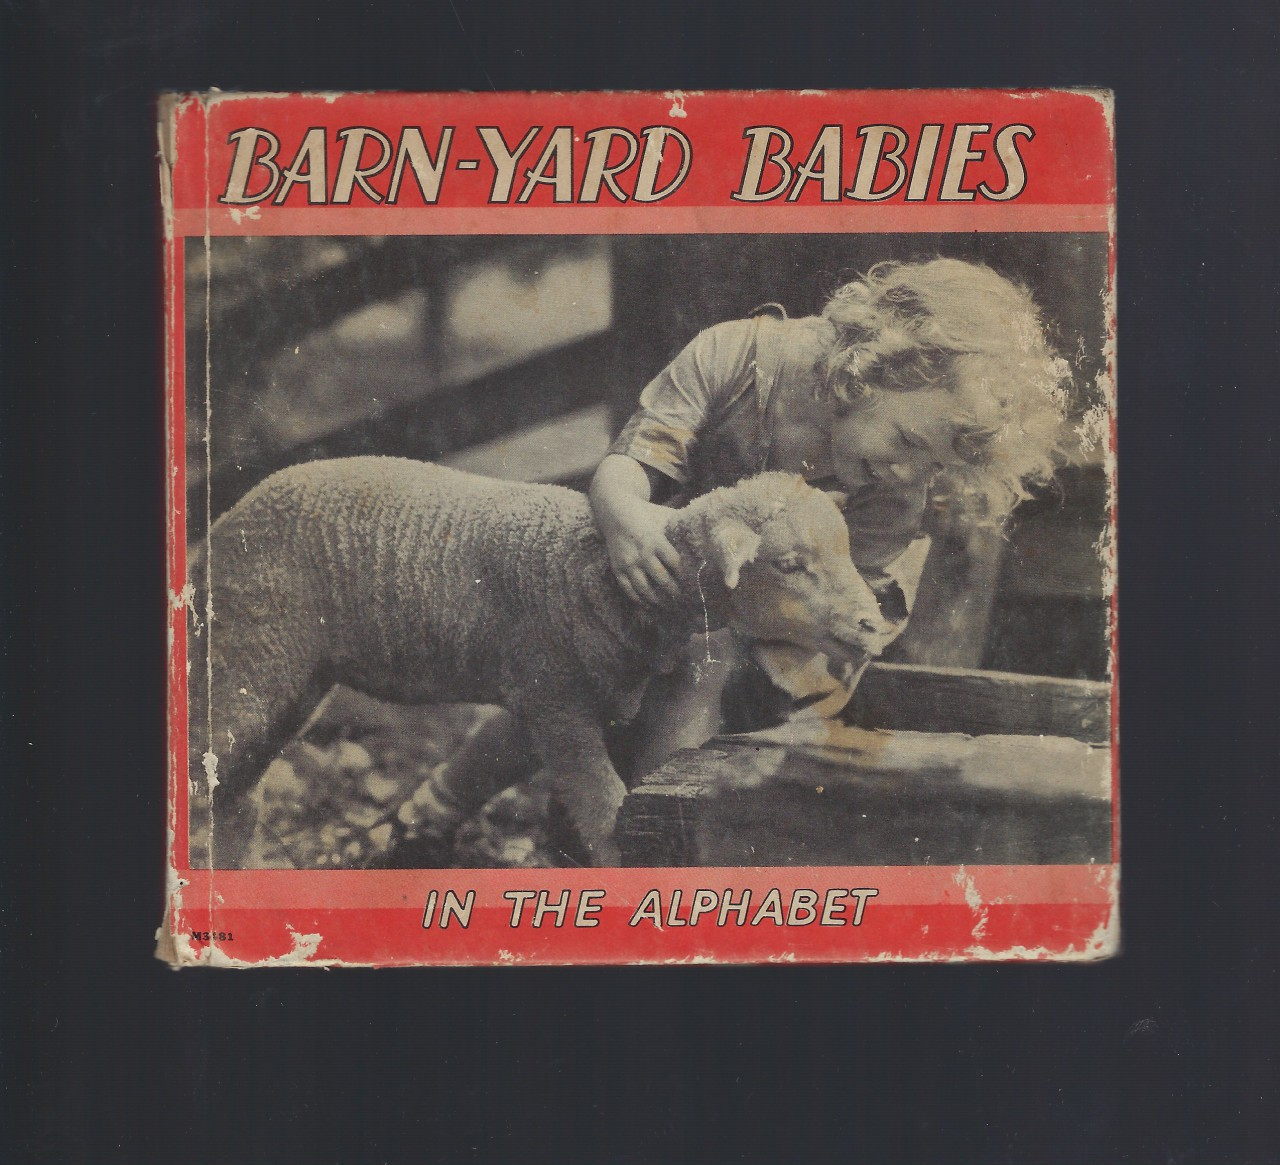 Barn-Yard Babies in the Alphabet Vintage Photographs, N/A